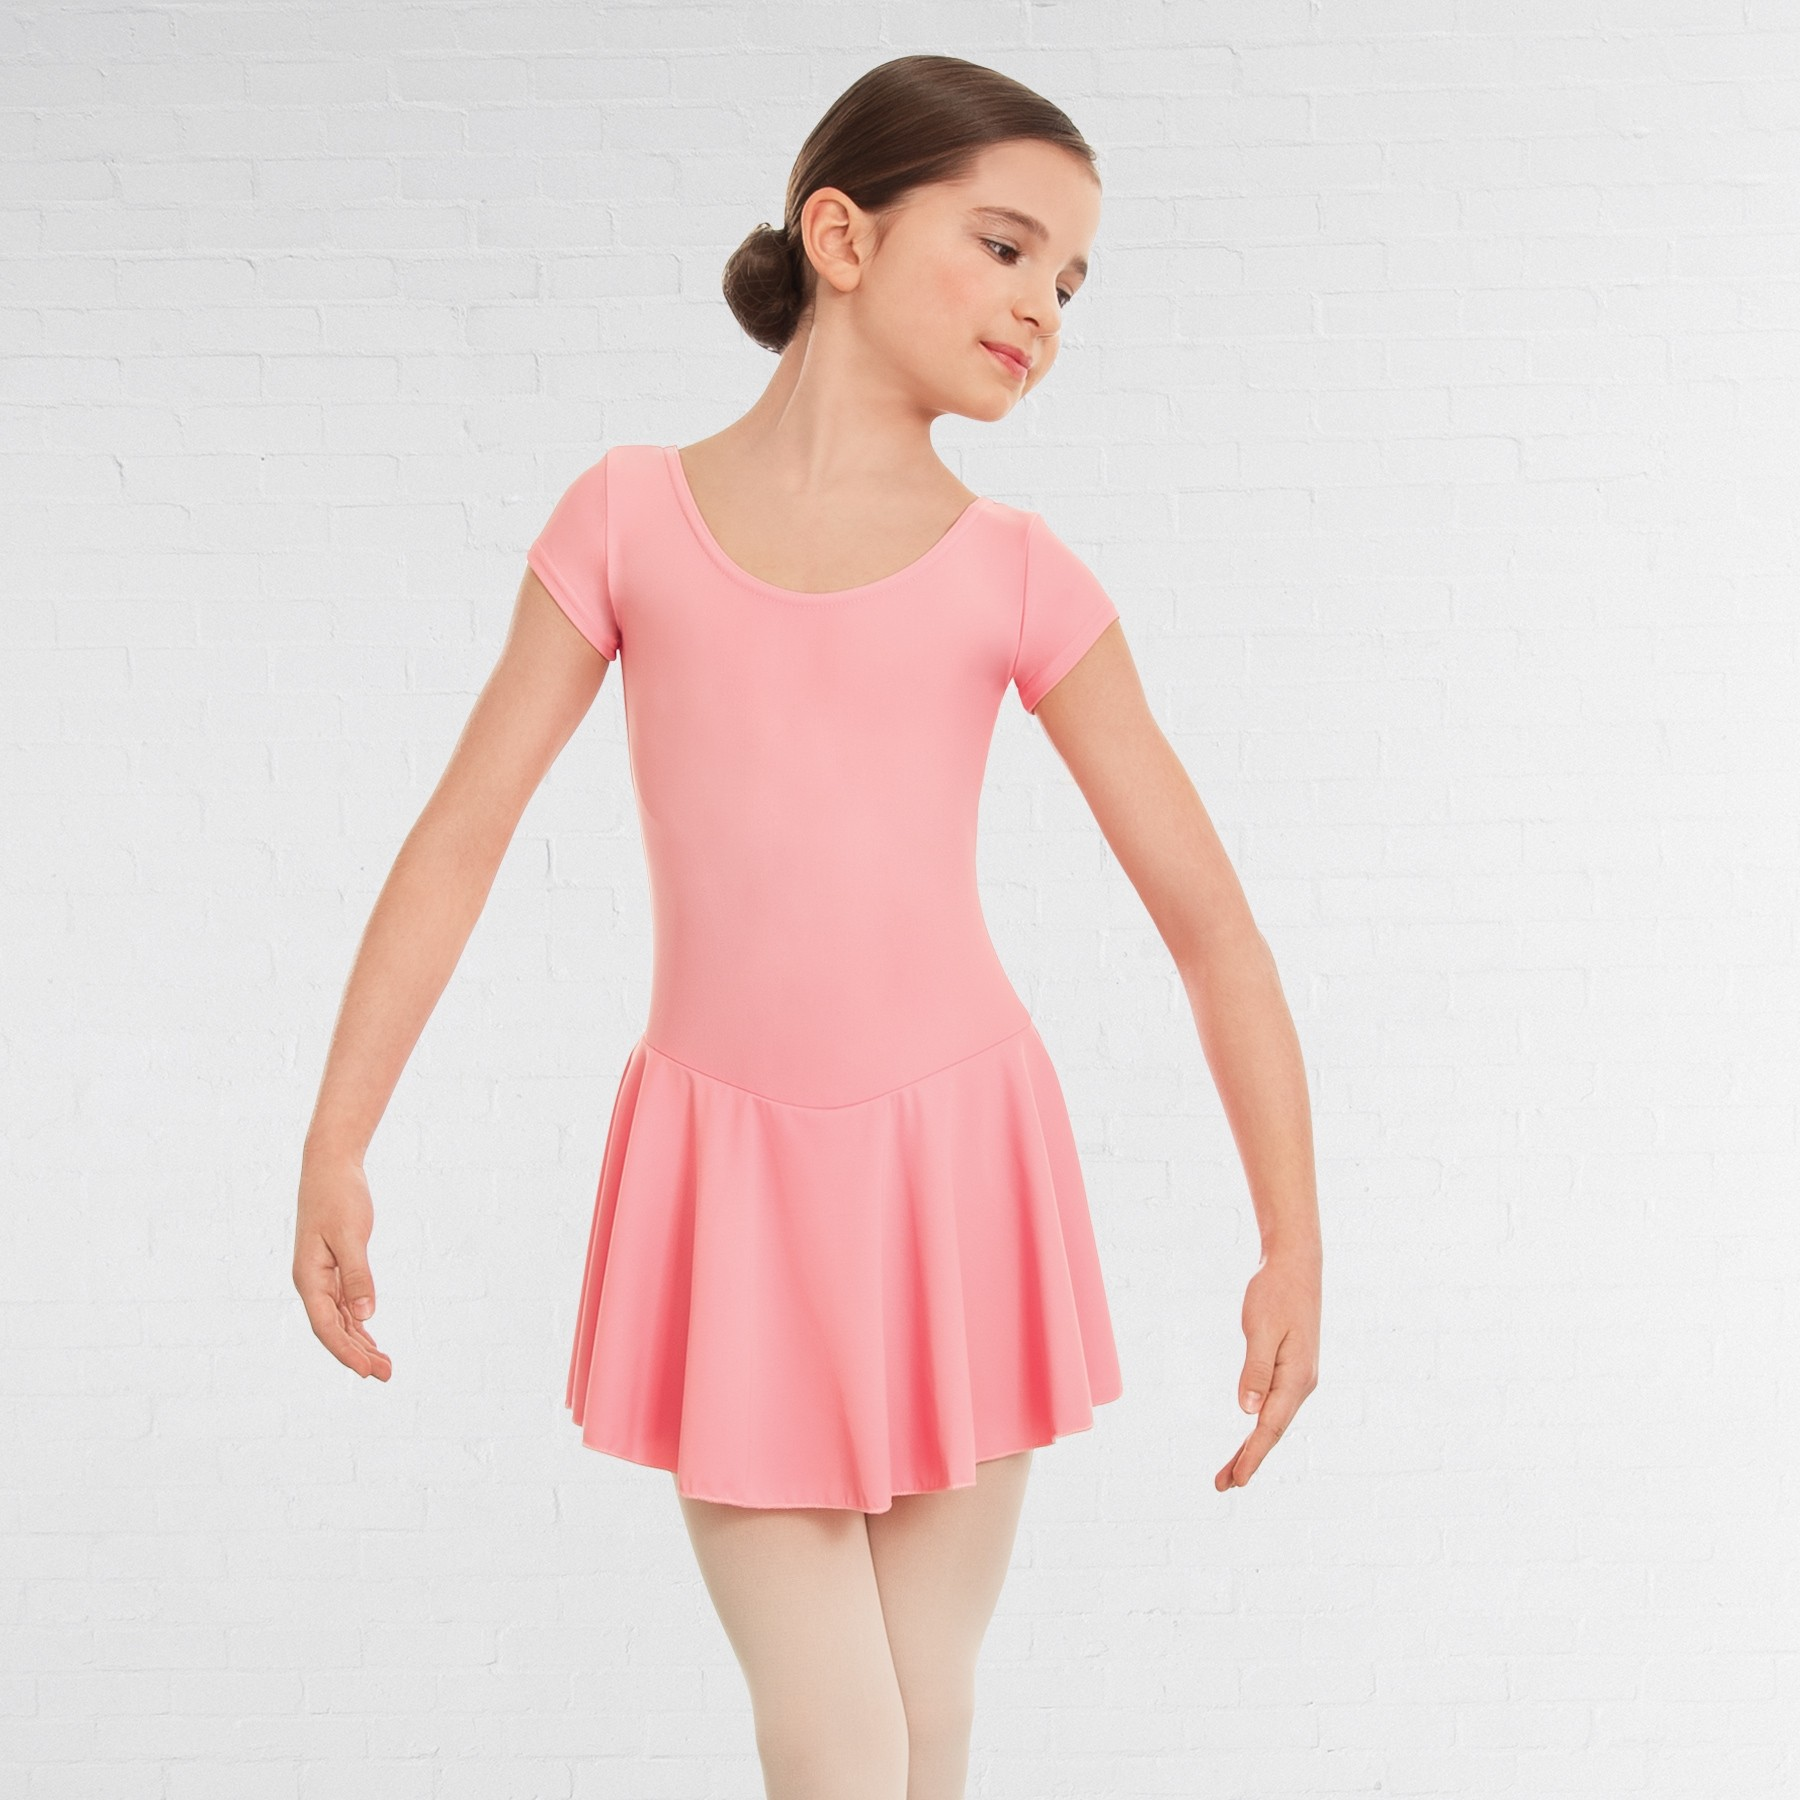 1st Position Maddy Skirted Cap Sleeve Leotard (Matt Nylon) (Candy Pink)